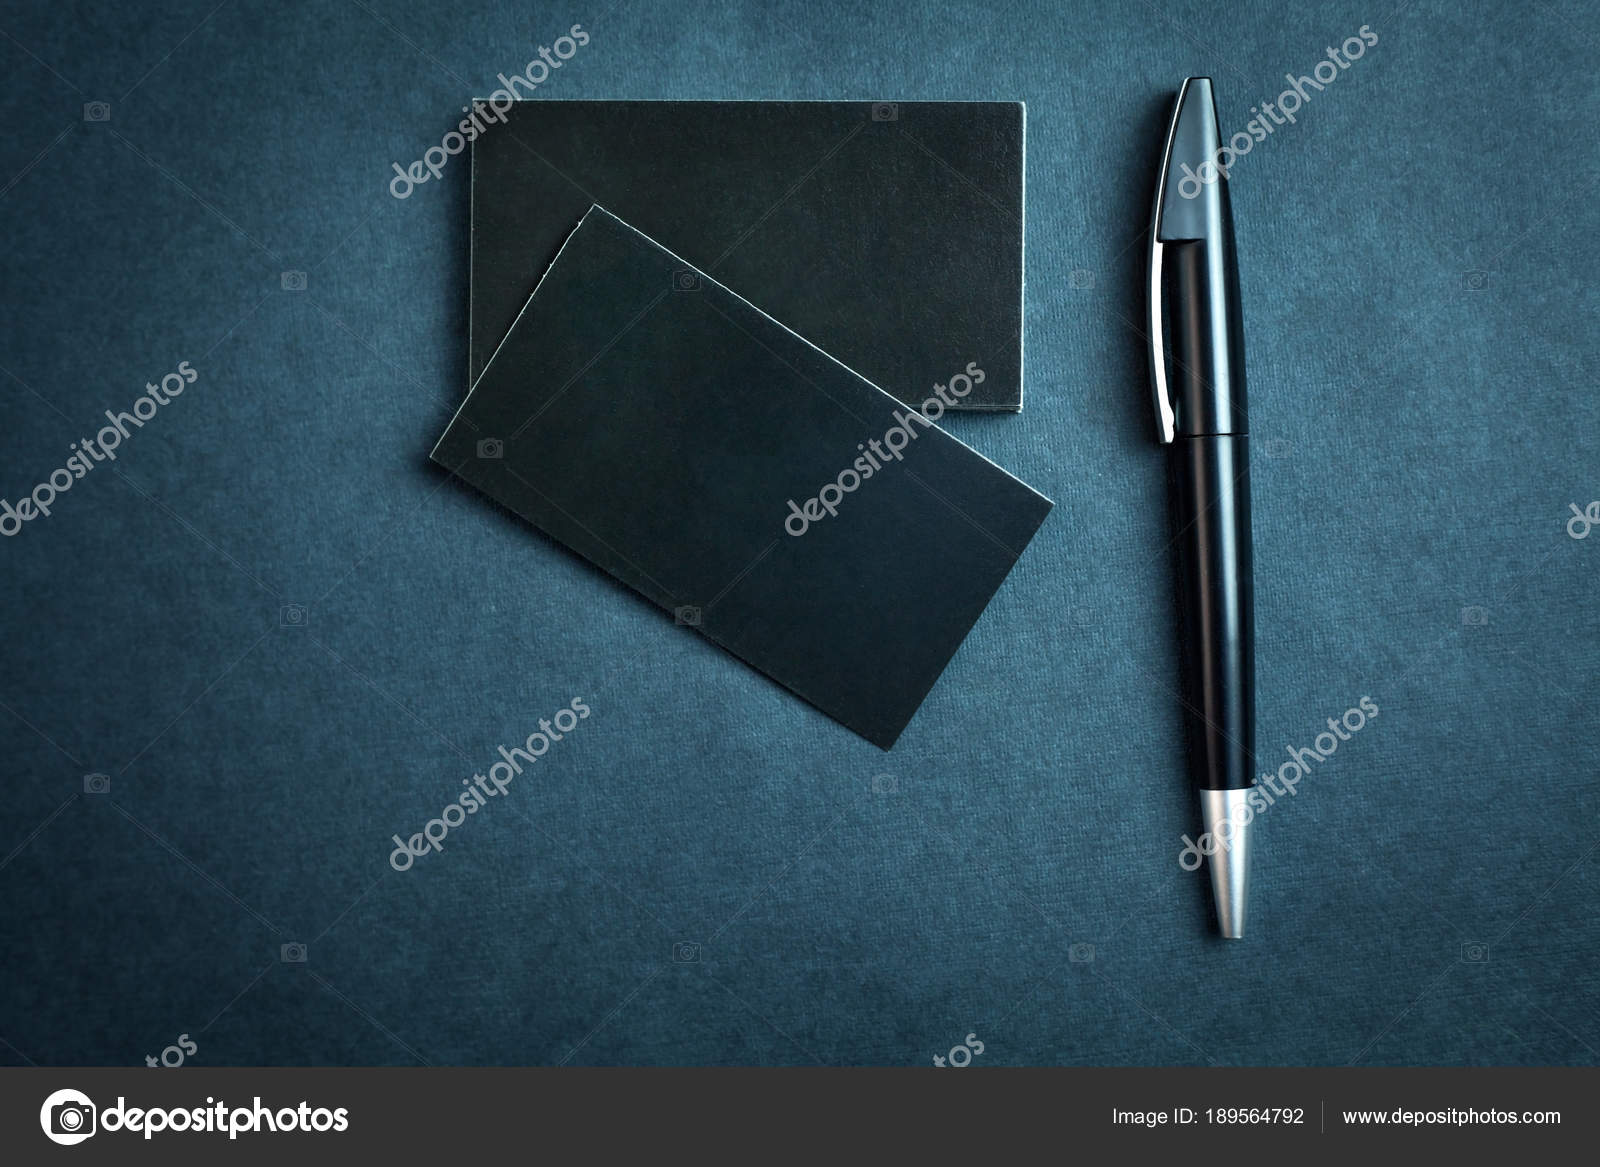 Black Business Cards And Pen On A Blue Background Stock Photo